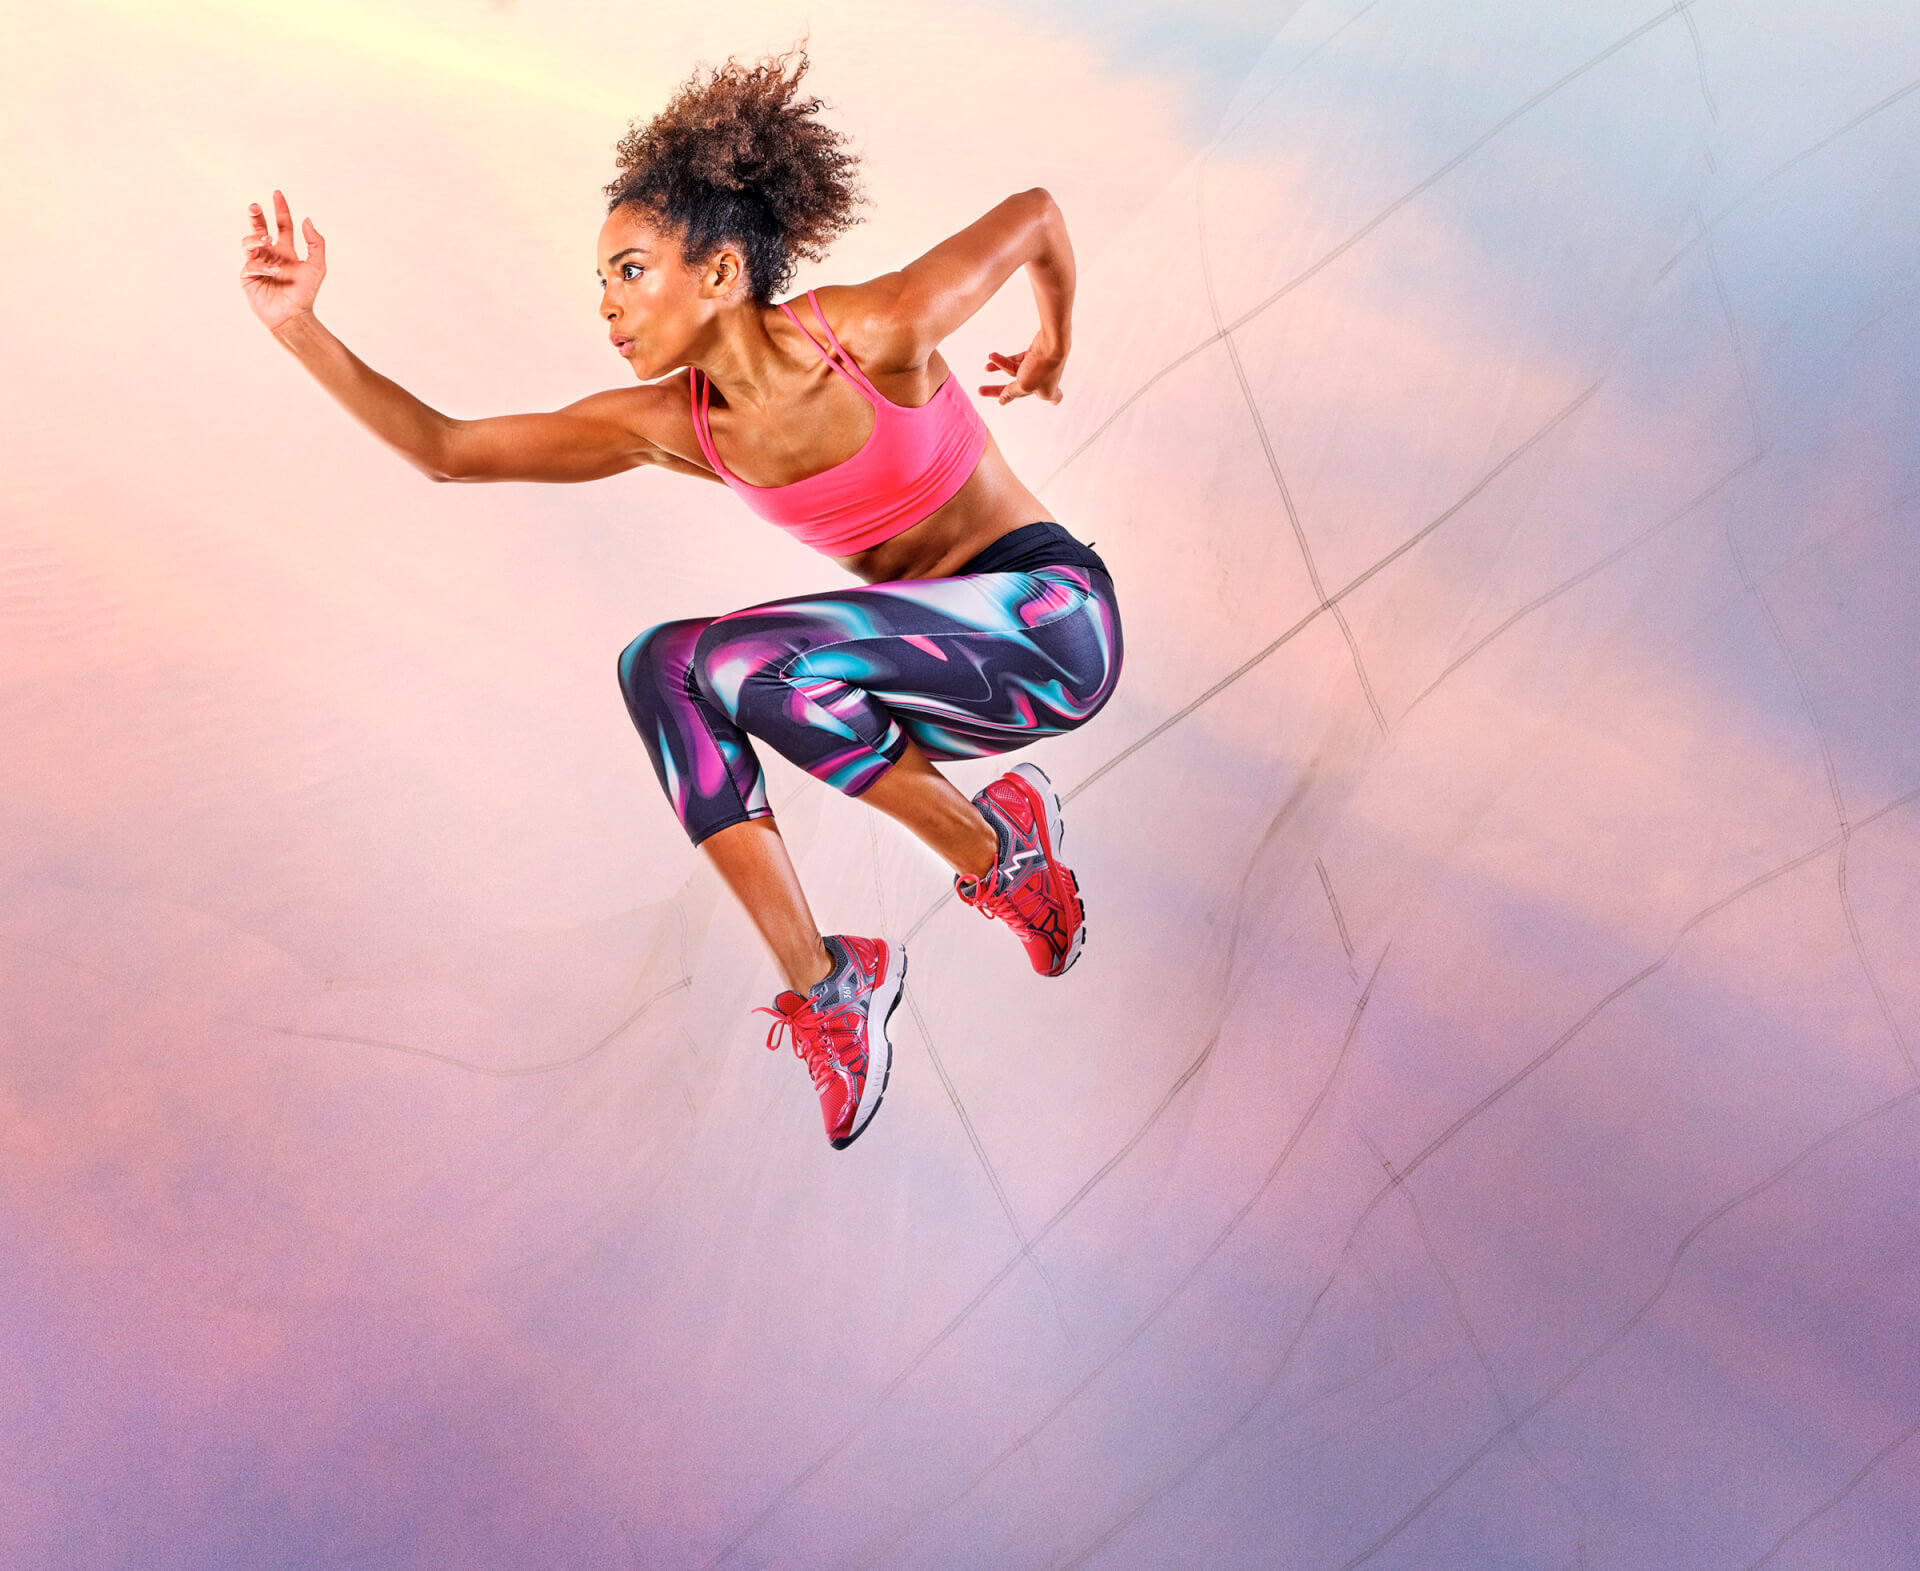 Portia wears Pink cropped top by Gap Active. Print leggings by M&S Activewear. Trainers by 361 Sports.